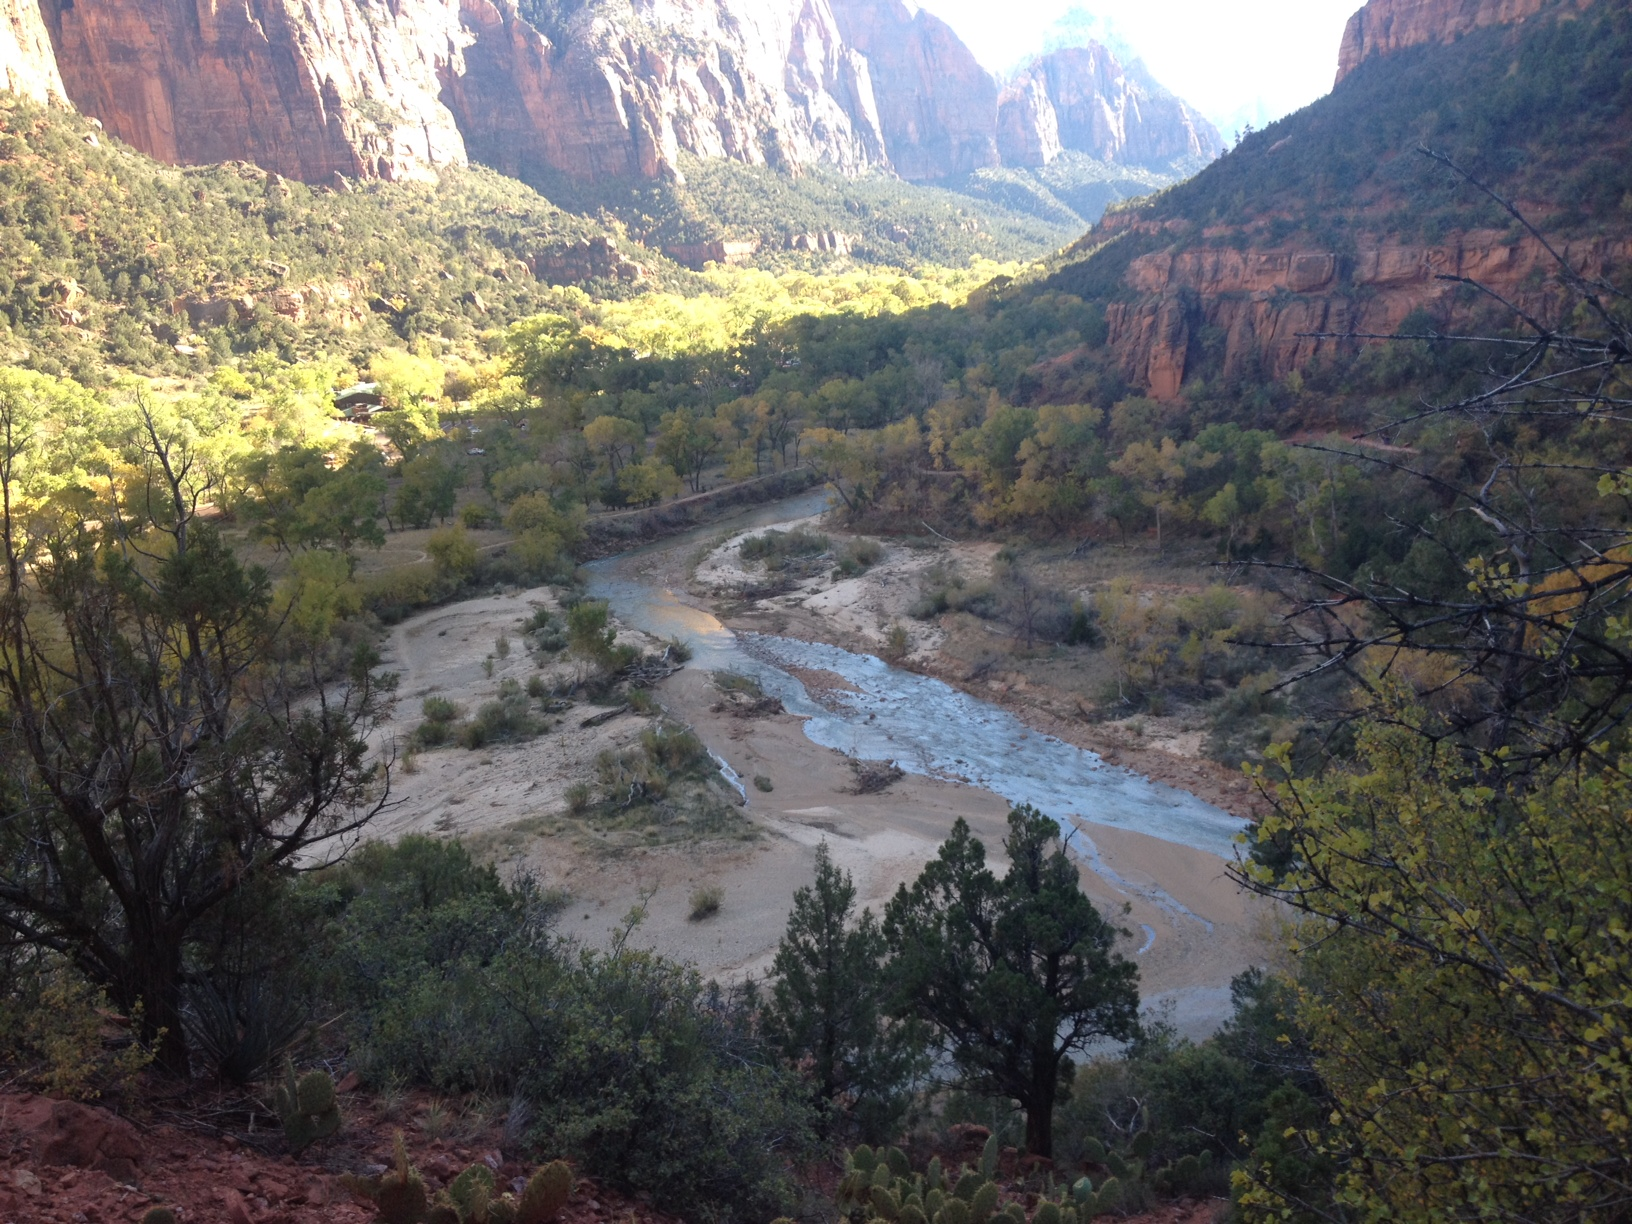 Photo of river and cliffs in Zion National Park